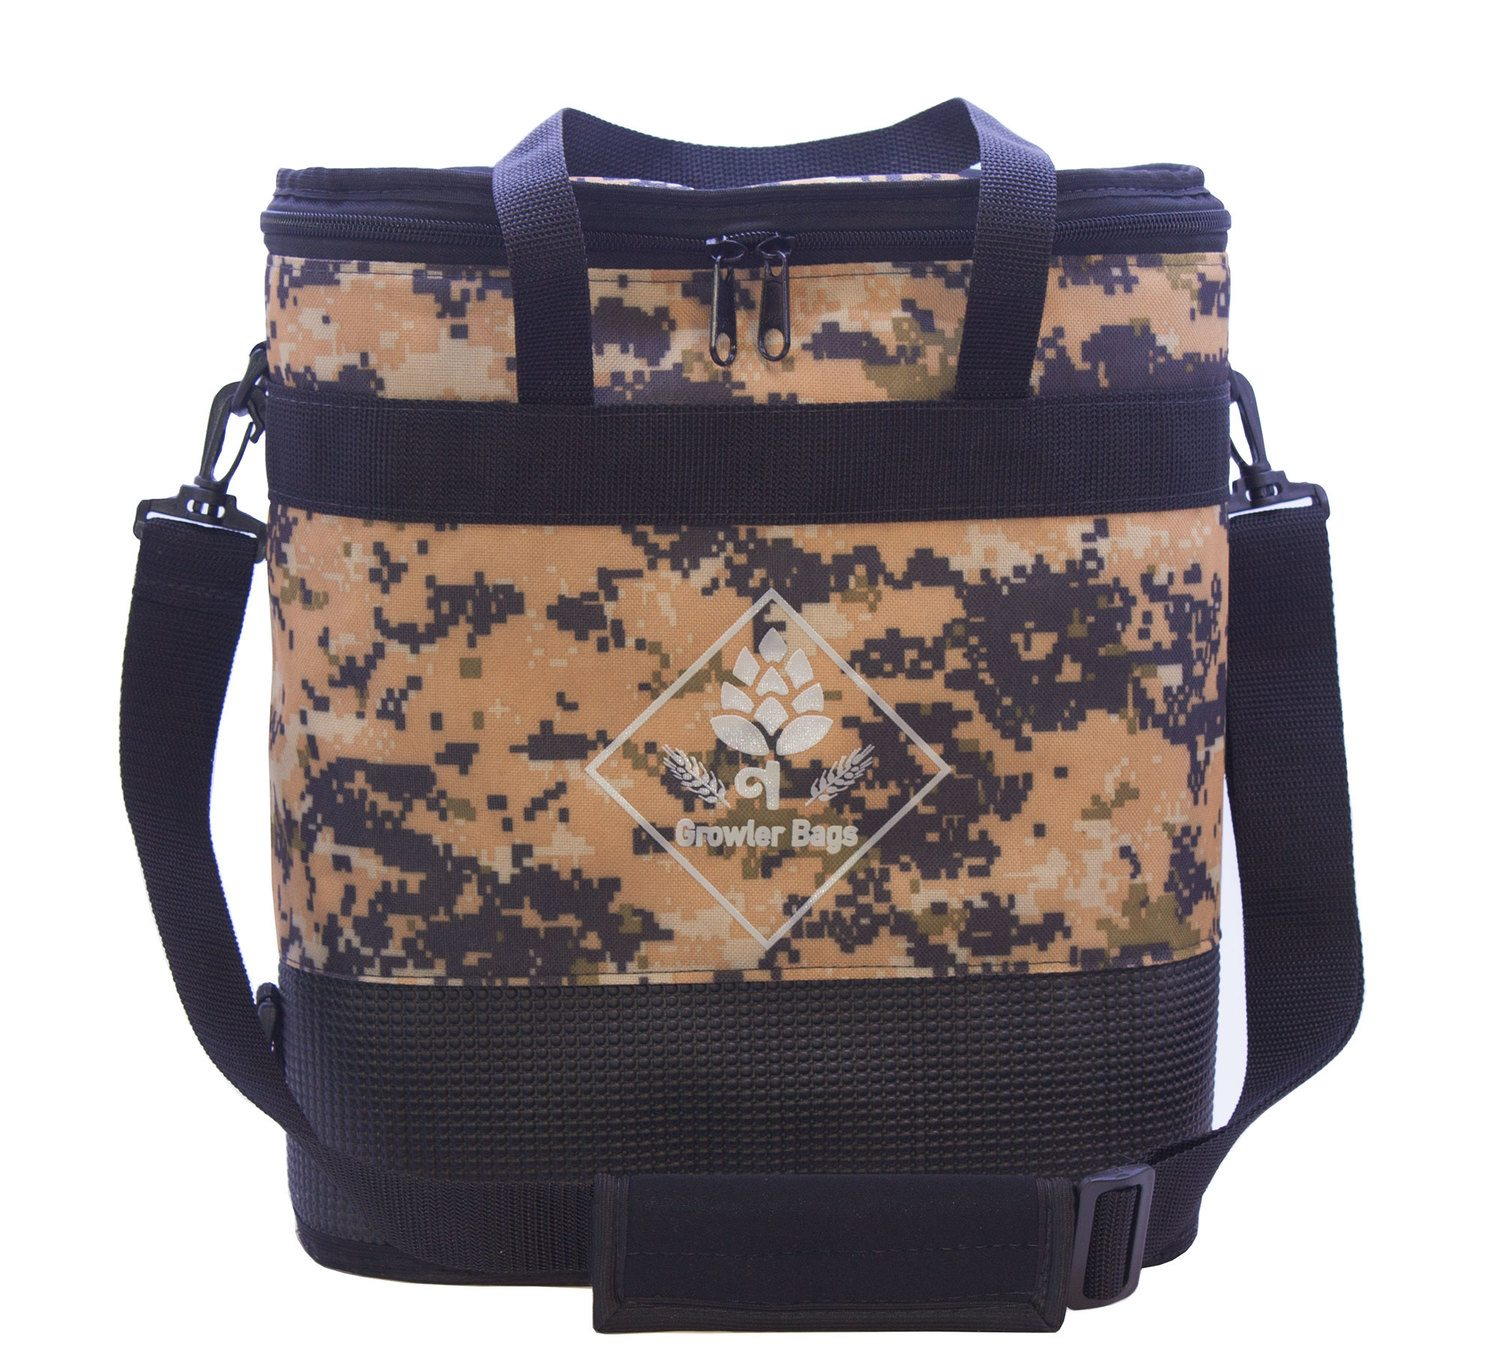 Growler Bag Double camuflada Deserto - Bolsa Térmica grande p/growler